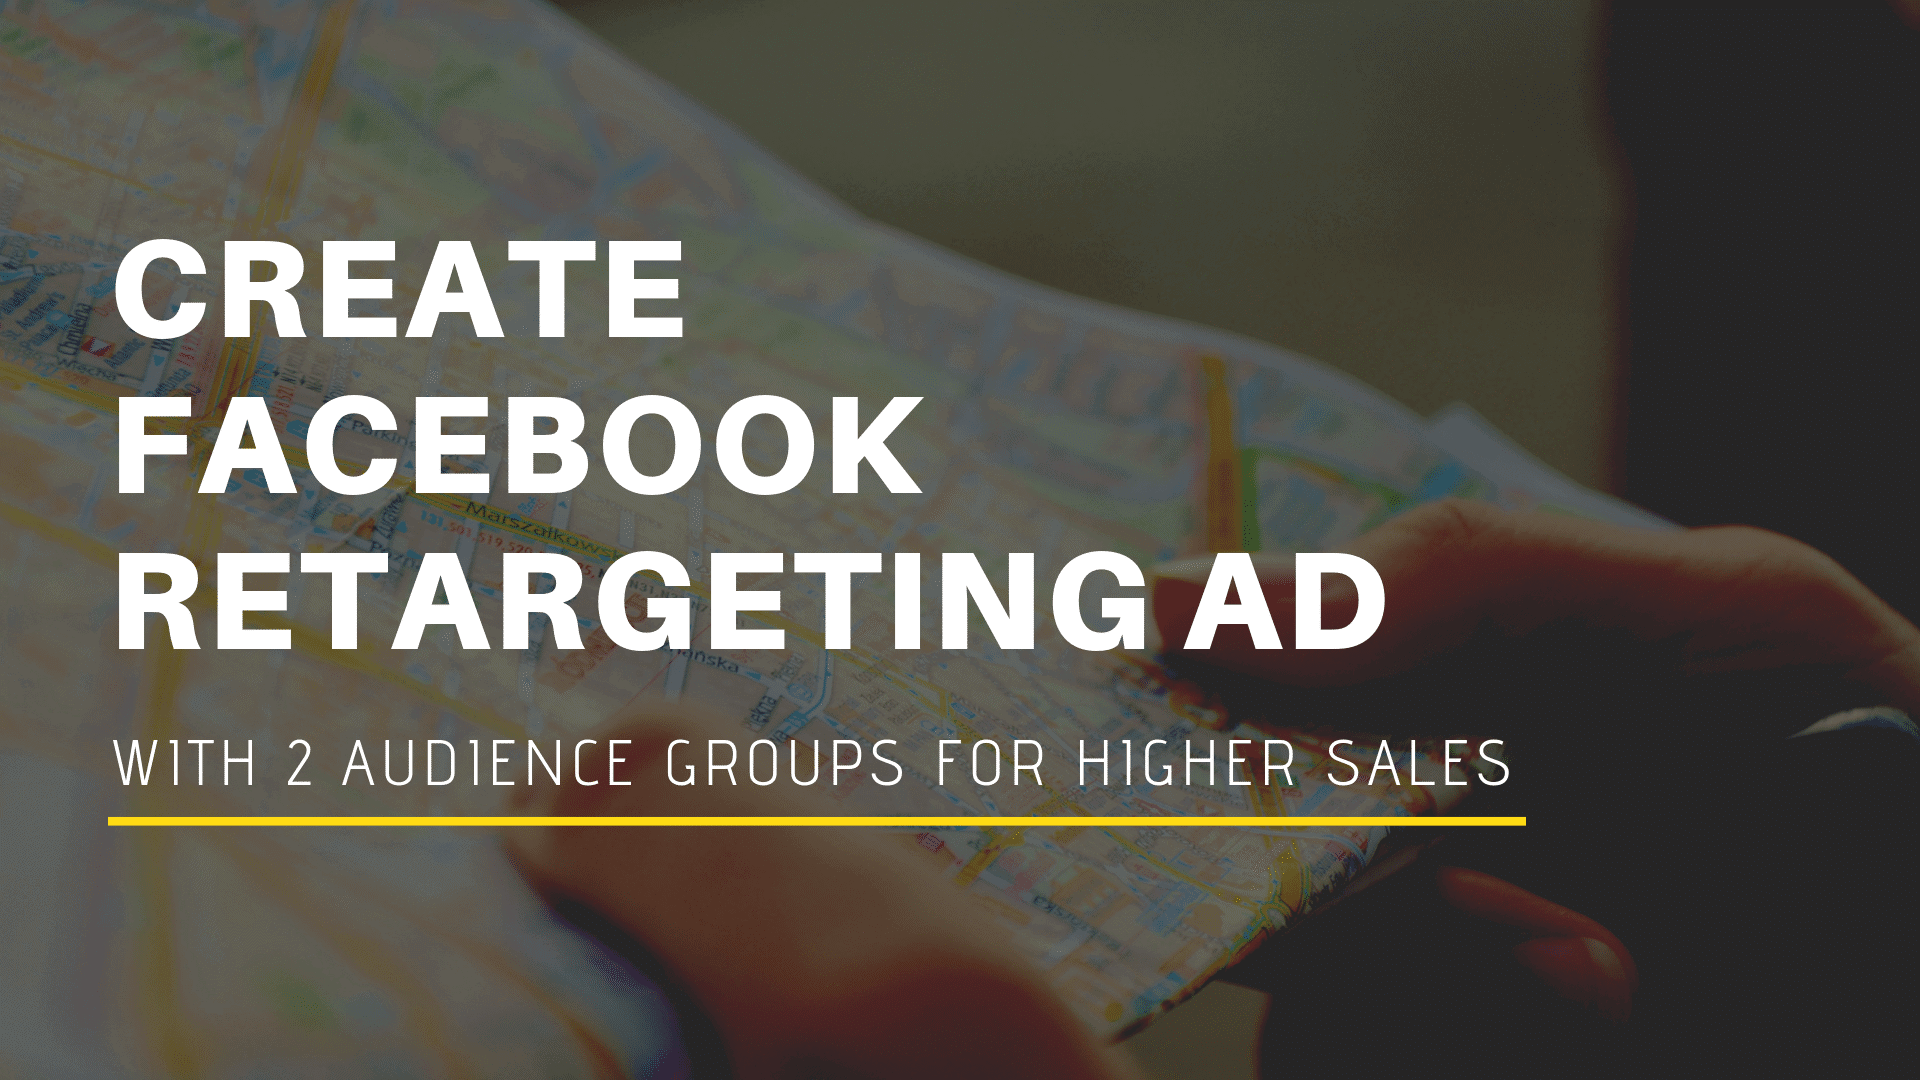 how-to-create-facebook-retargeting-ads-with-2-audience-group-for-higher-sales